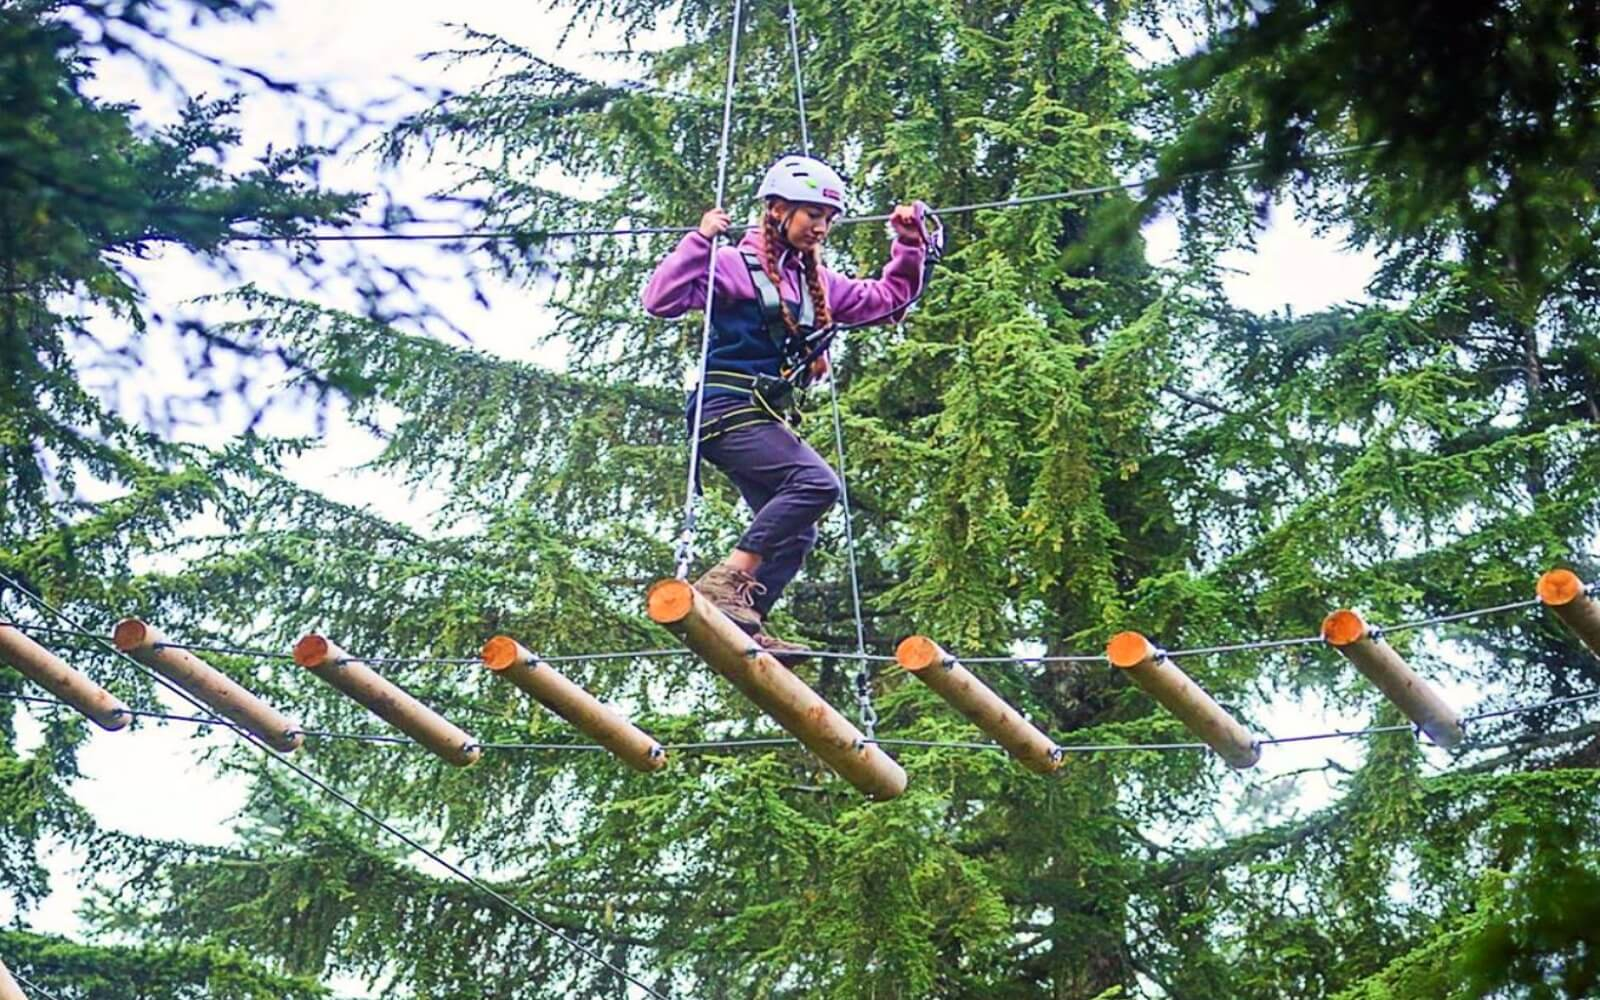 A woman climbs through the forest on a ropes adventure